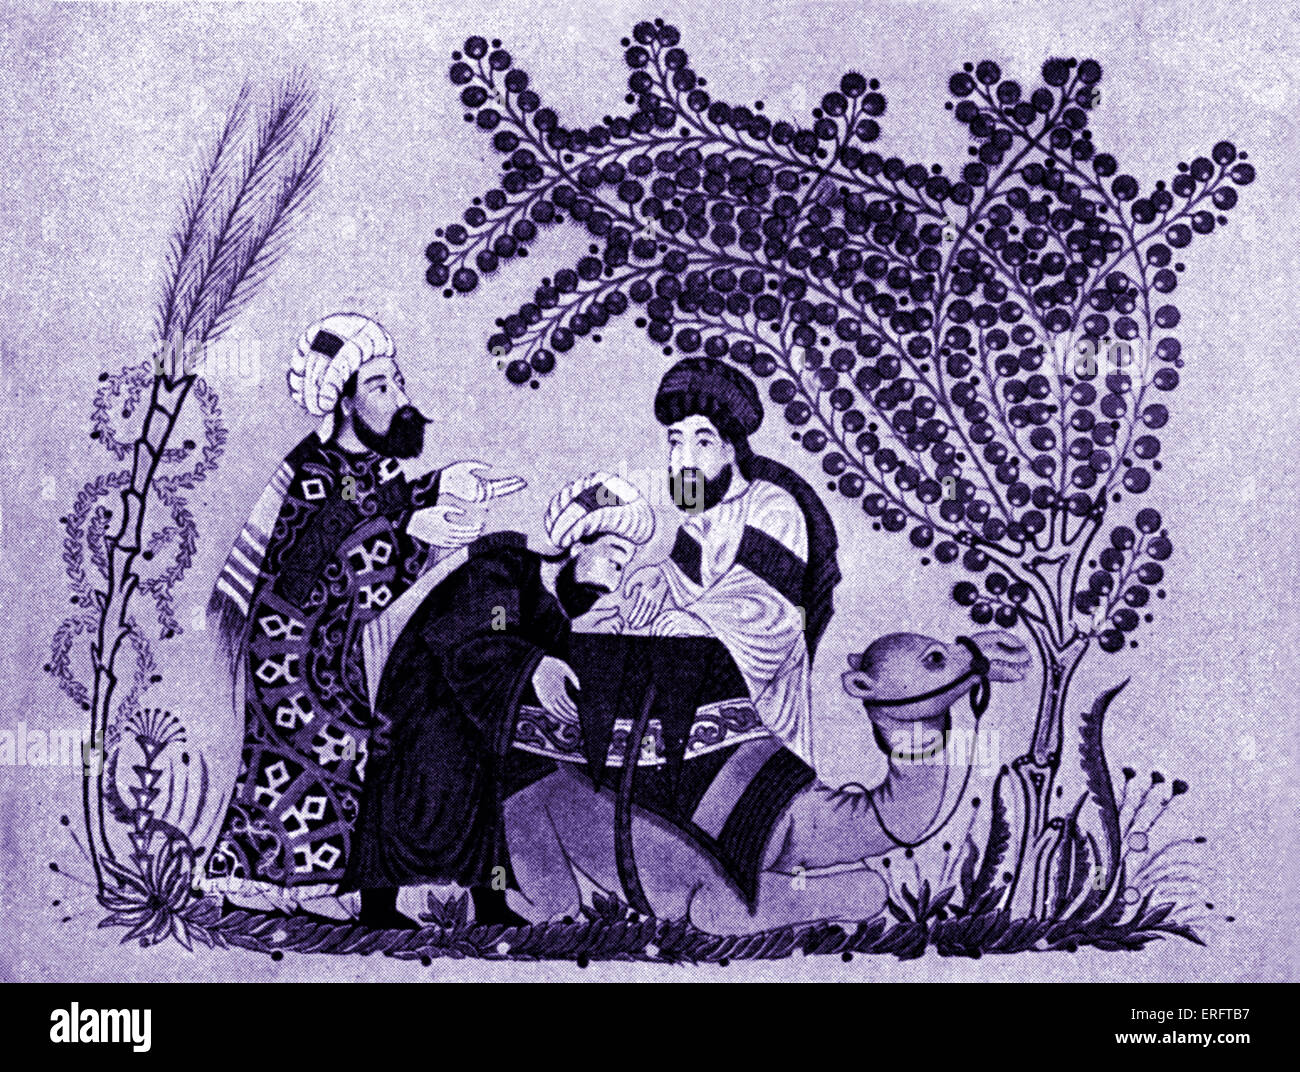 Arab merchants with camel (caravan) - miniature from the Maqamat of al-Hariri. - Stock Image